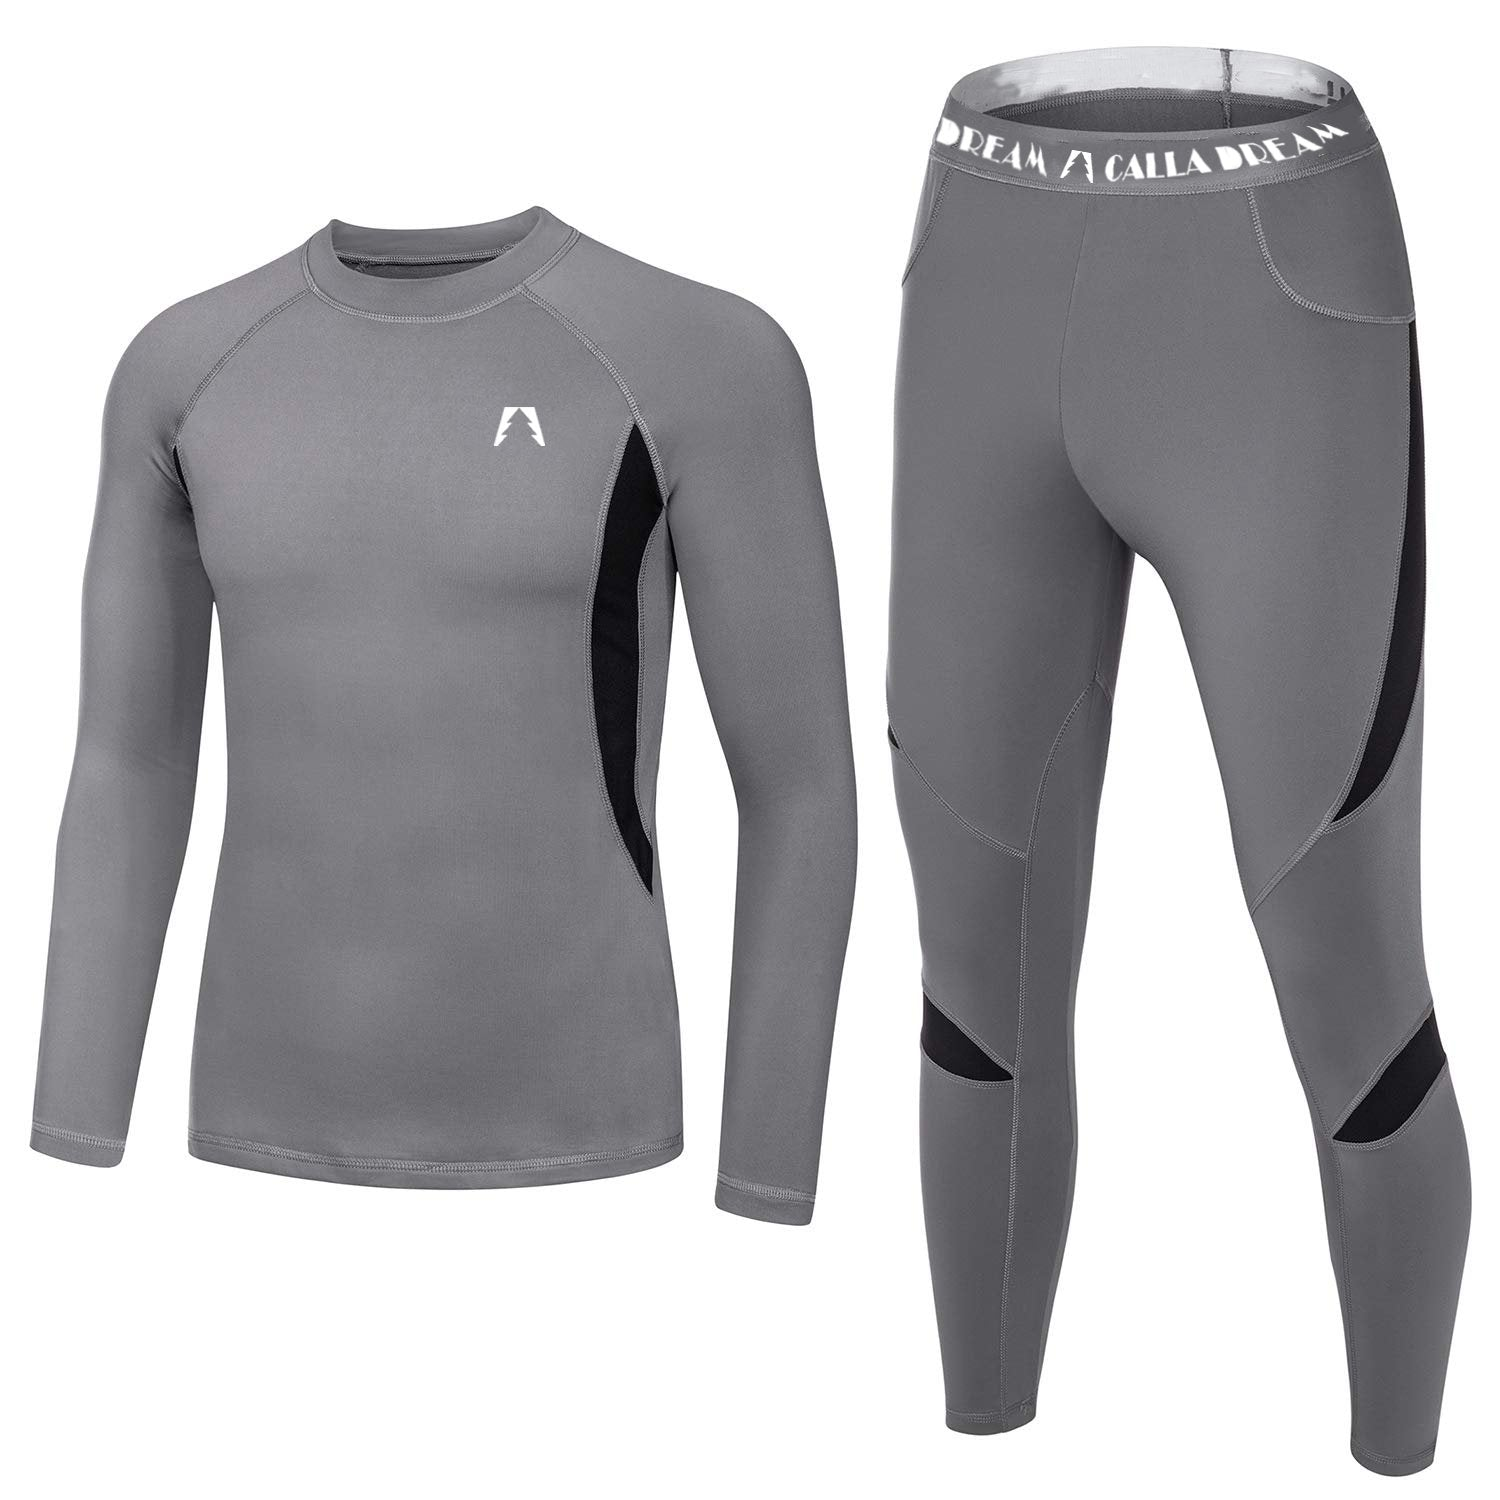 New men's outdoor fleece thermal sports underwear set quick-dry, tight, sweat-sucking sports cycling suit